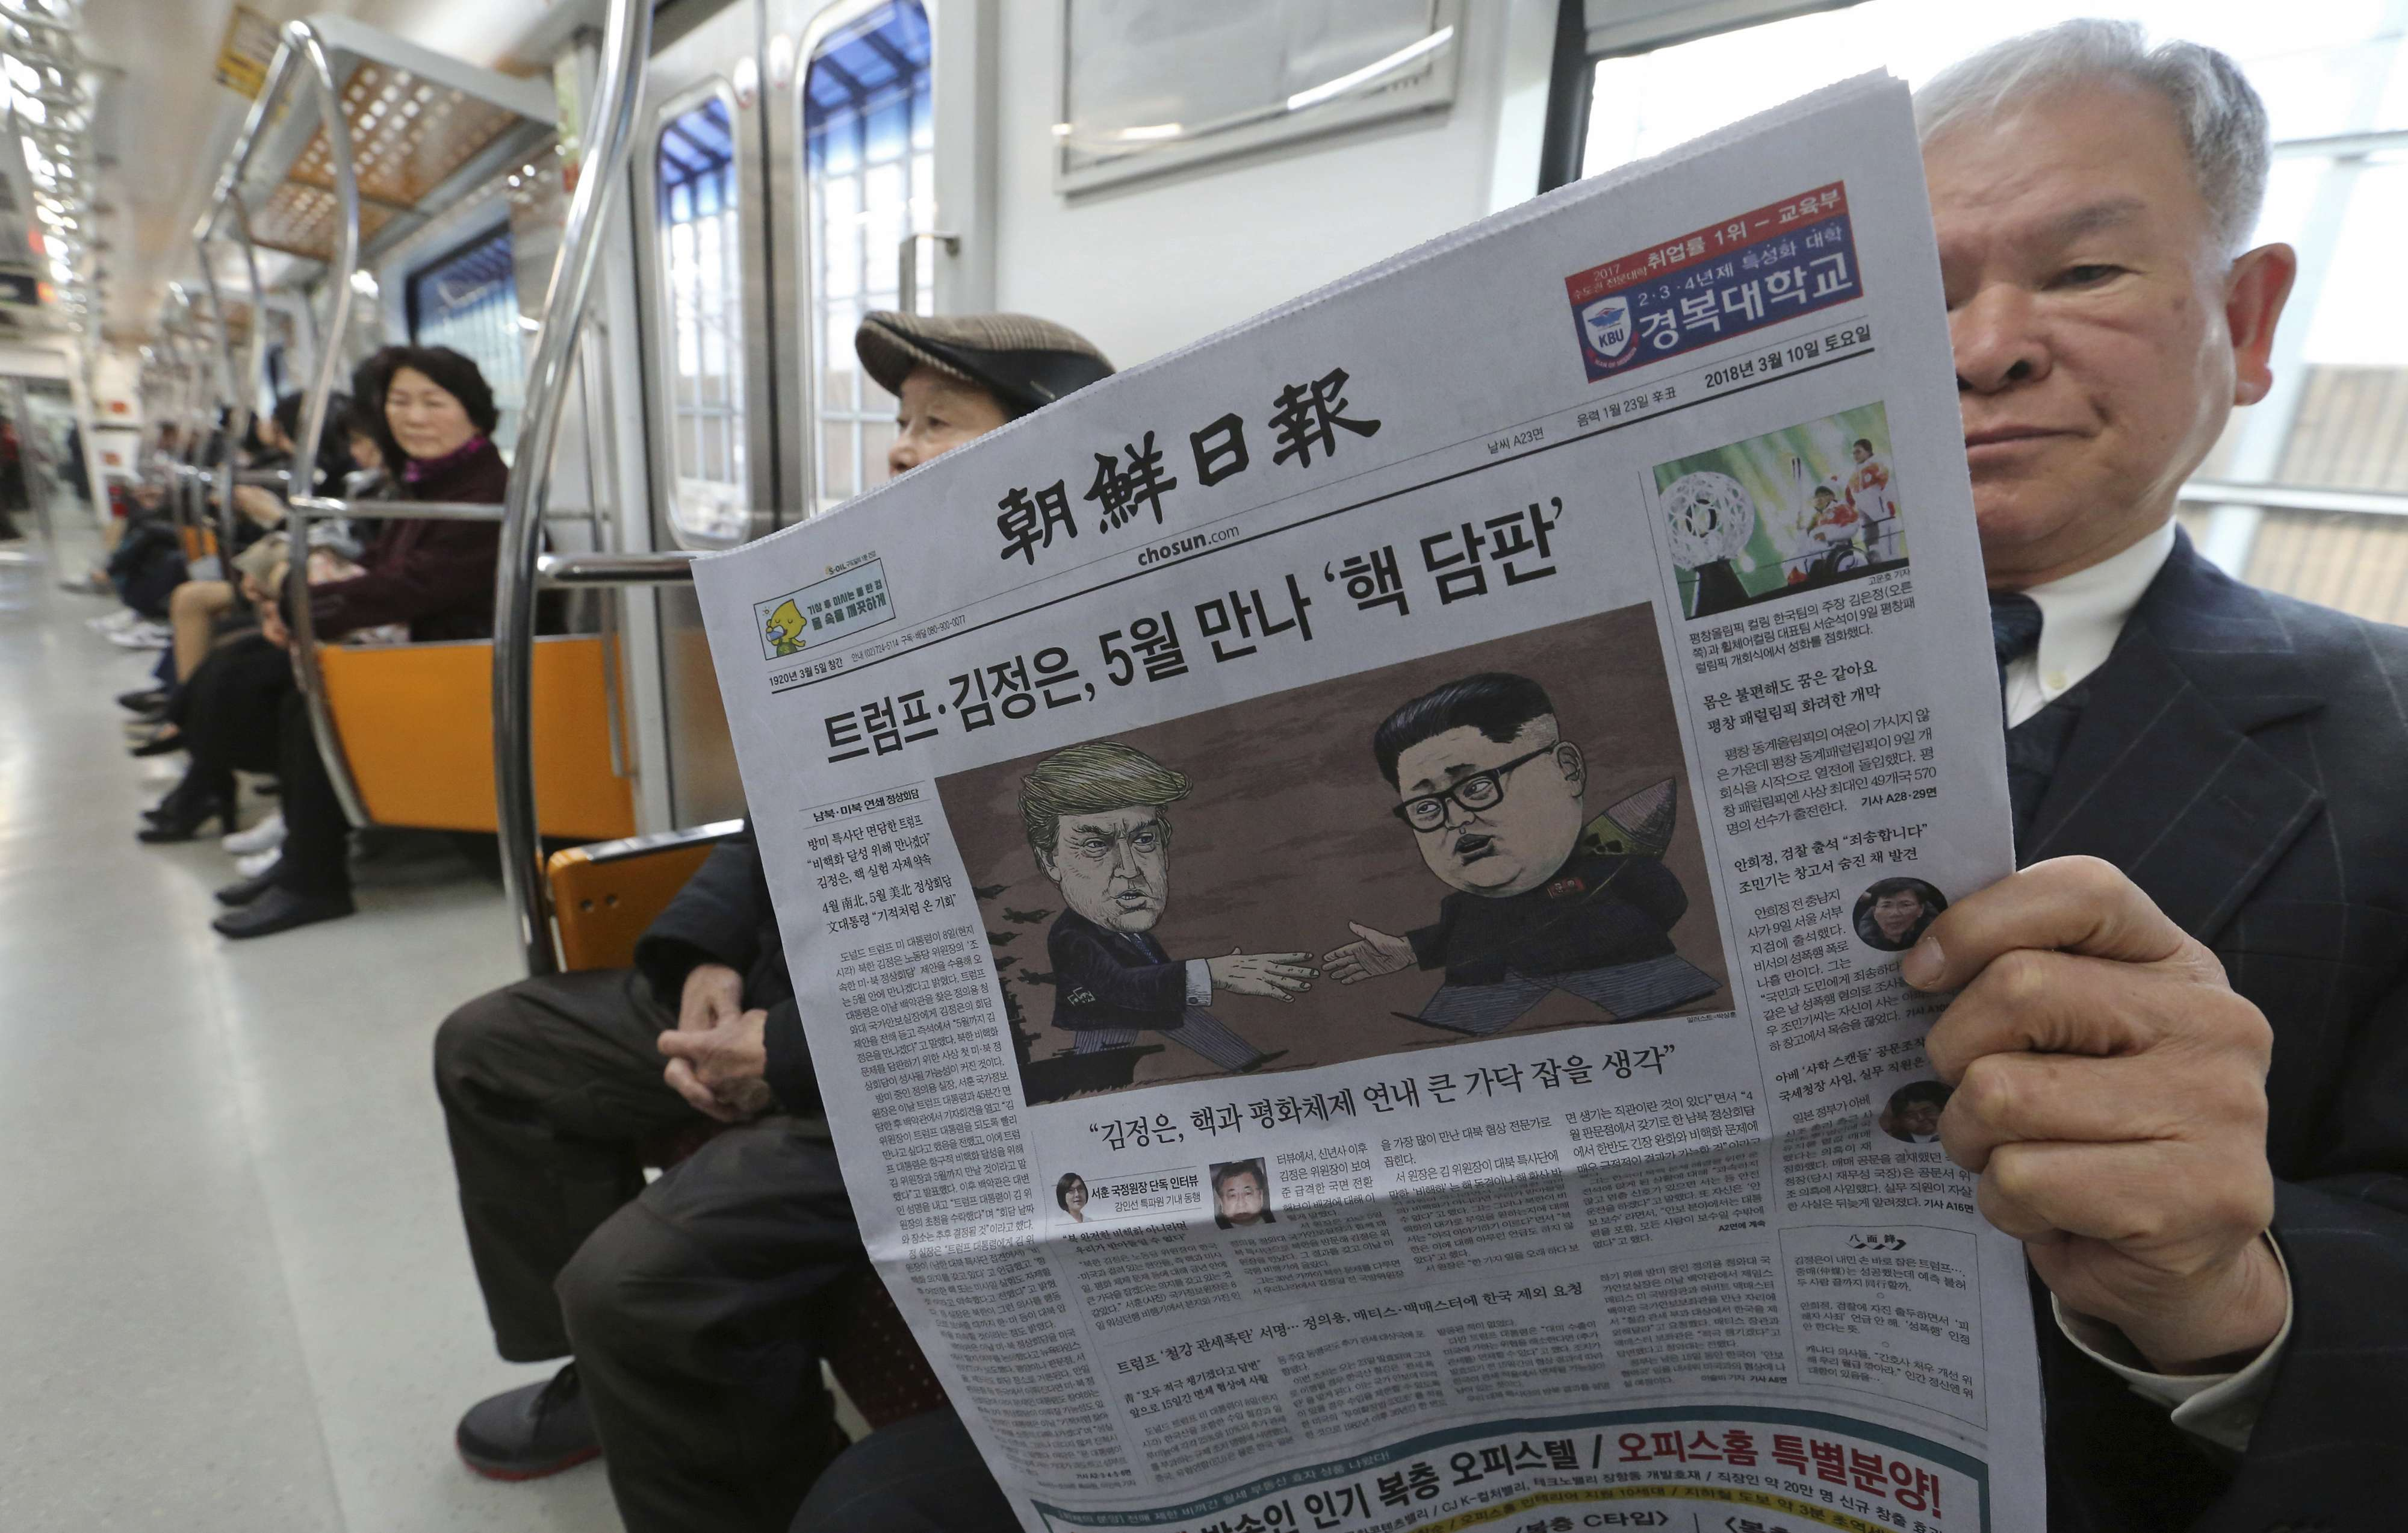 A passenger on a subway train in Seoul on March 10 reads a newspaper with a headline of a planned summit meeting between North Korean leader Kim Jong-un and US President Donald Trump. 		(AP)